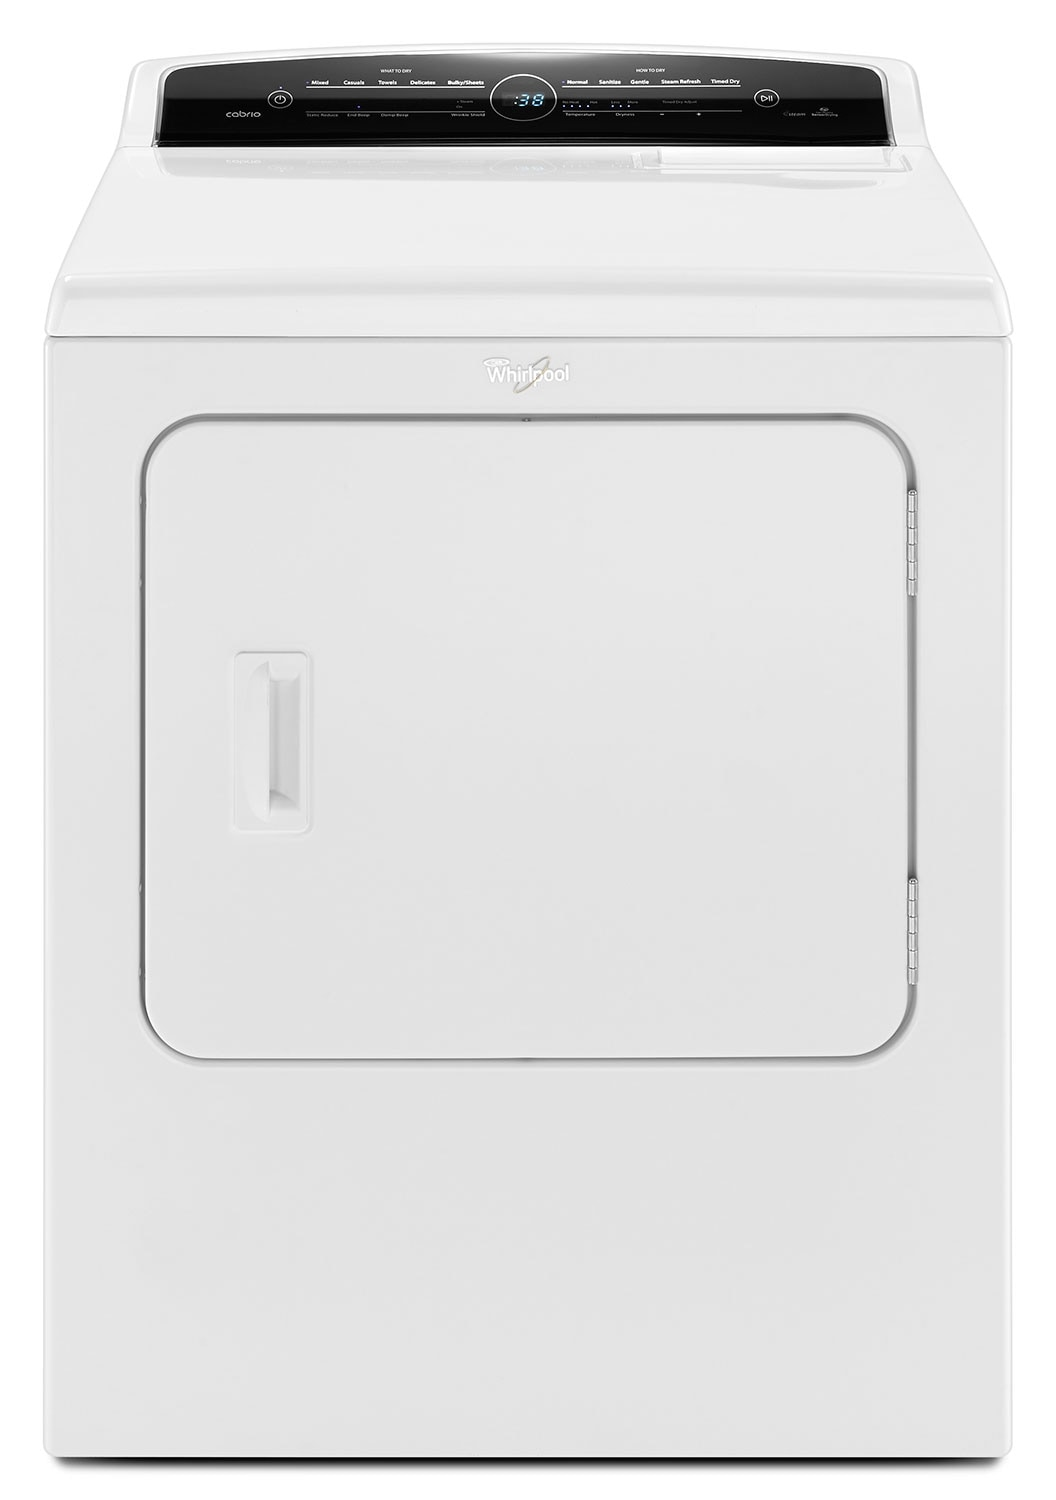 Washers and Dryers - Whirlpool® Cabrio® 7.0 Cu. Ft. Electric Dryer - White